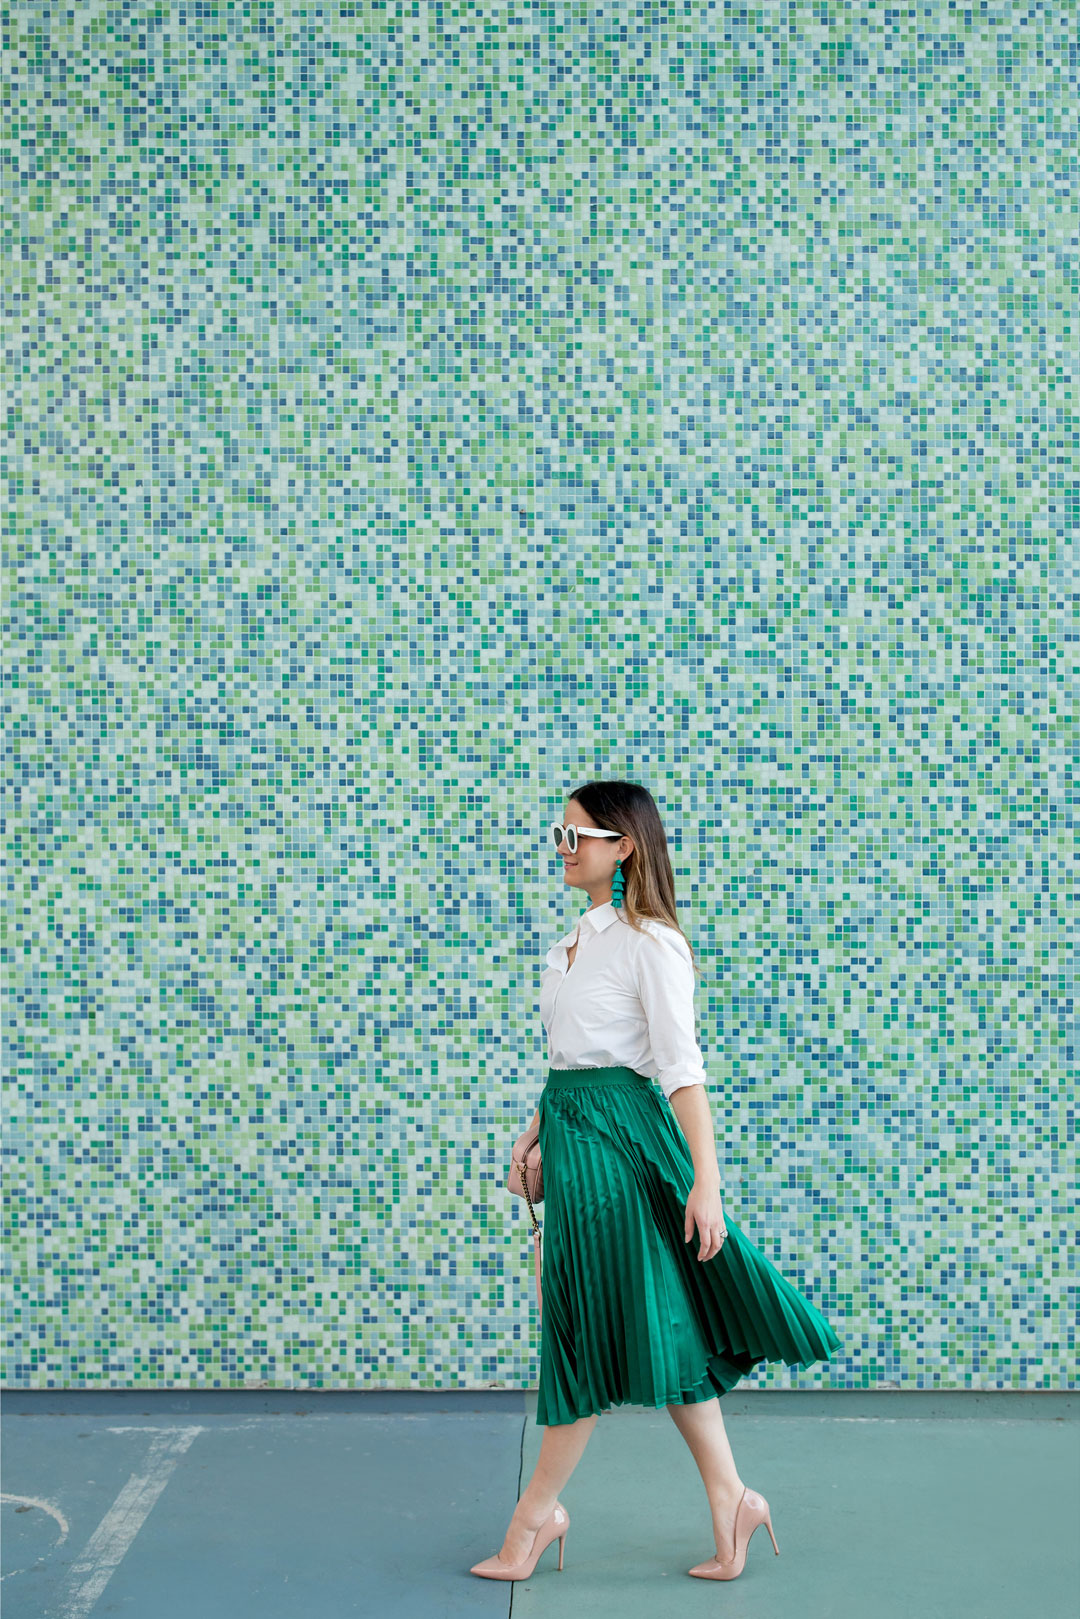 Houston Green Tile Wall